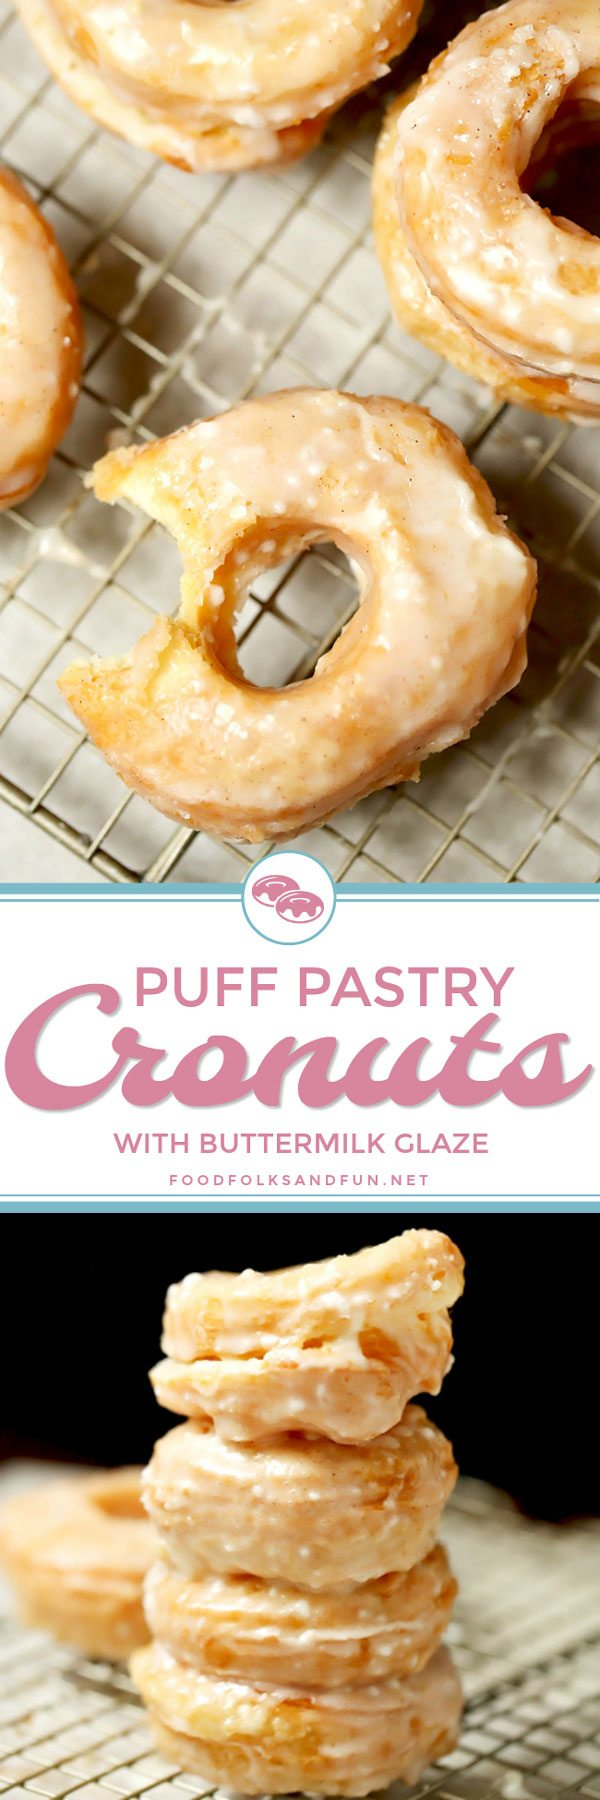 Cronuts made with Puff Pastry Dough.